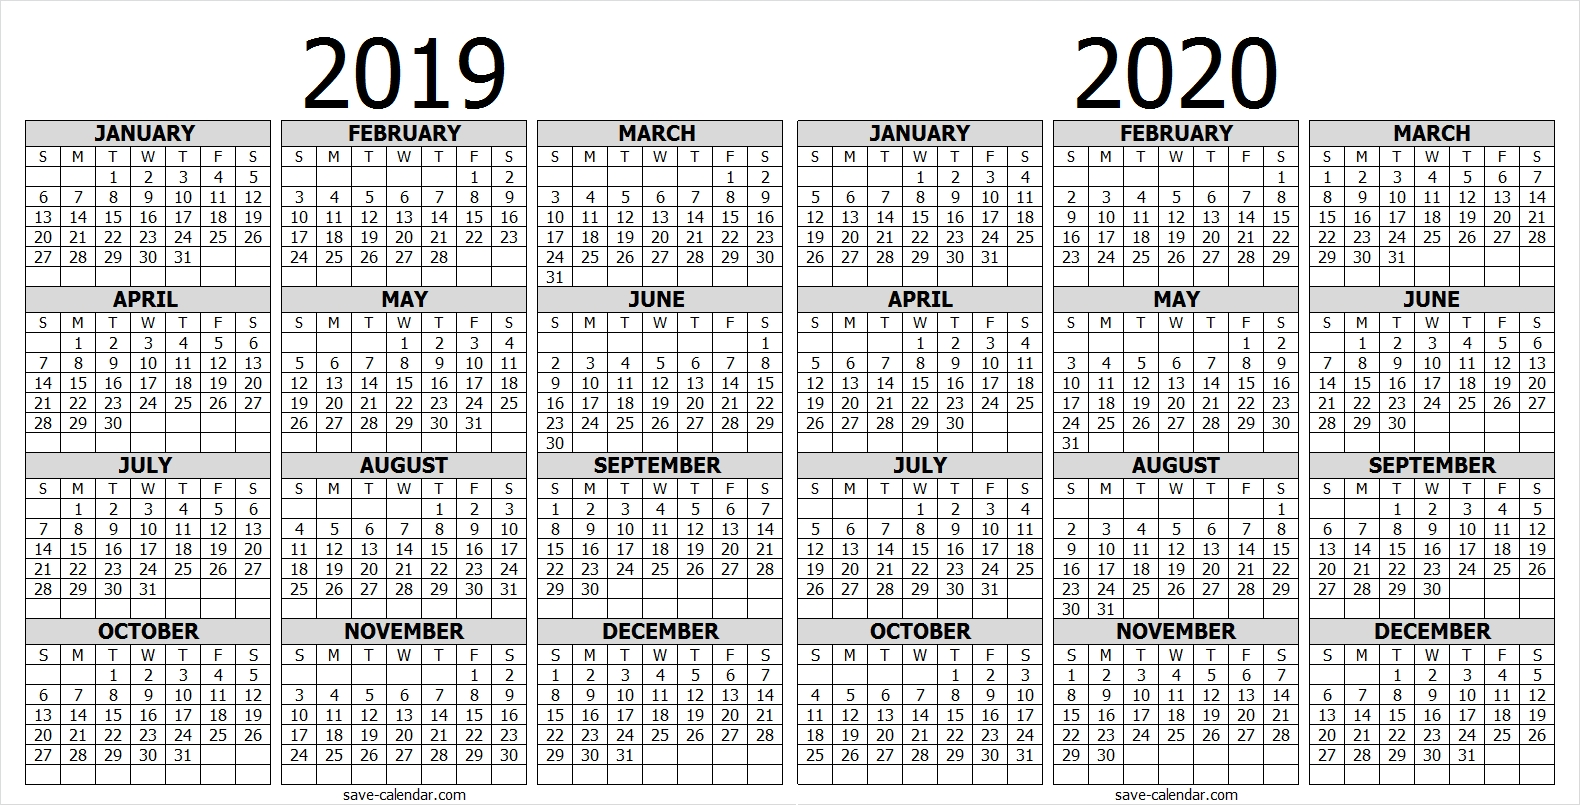 Calendar 2019 2020 One Page | 2019 Calendar | Free Calendar throughout 2019 And 2020 Calendar One Page